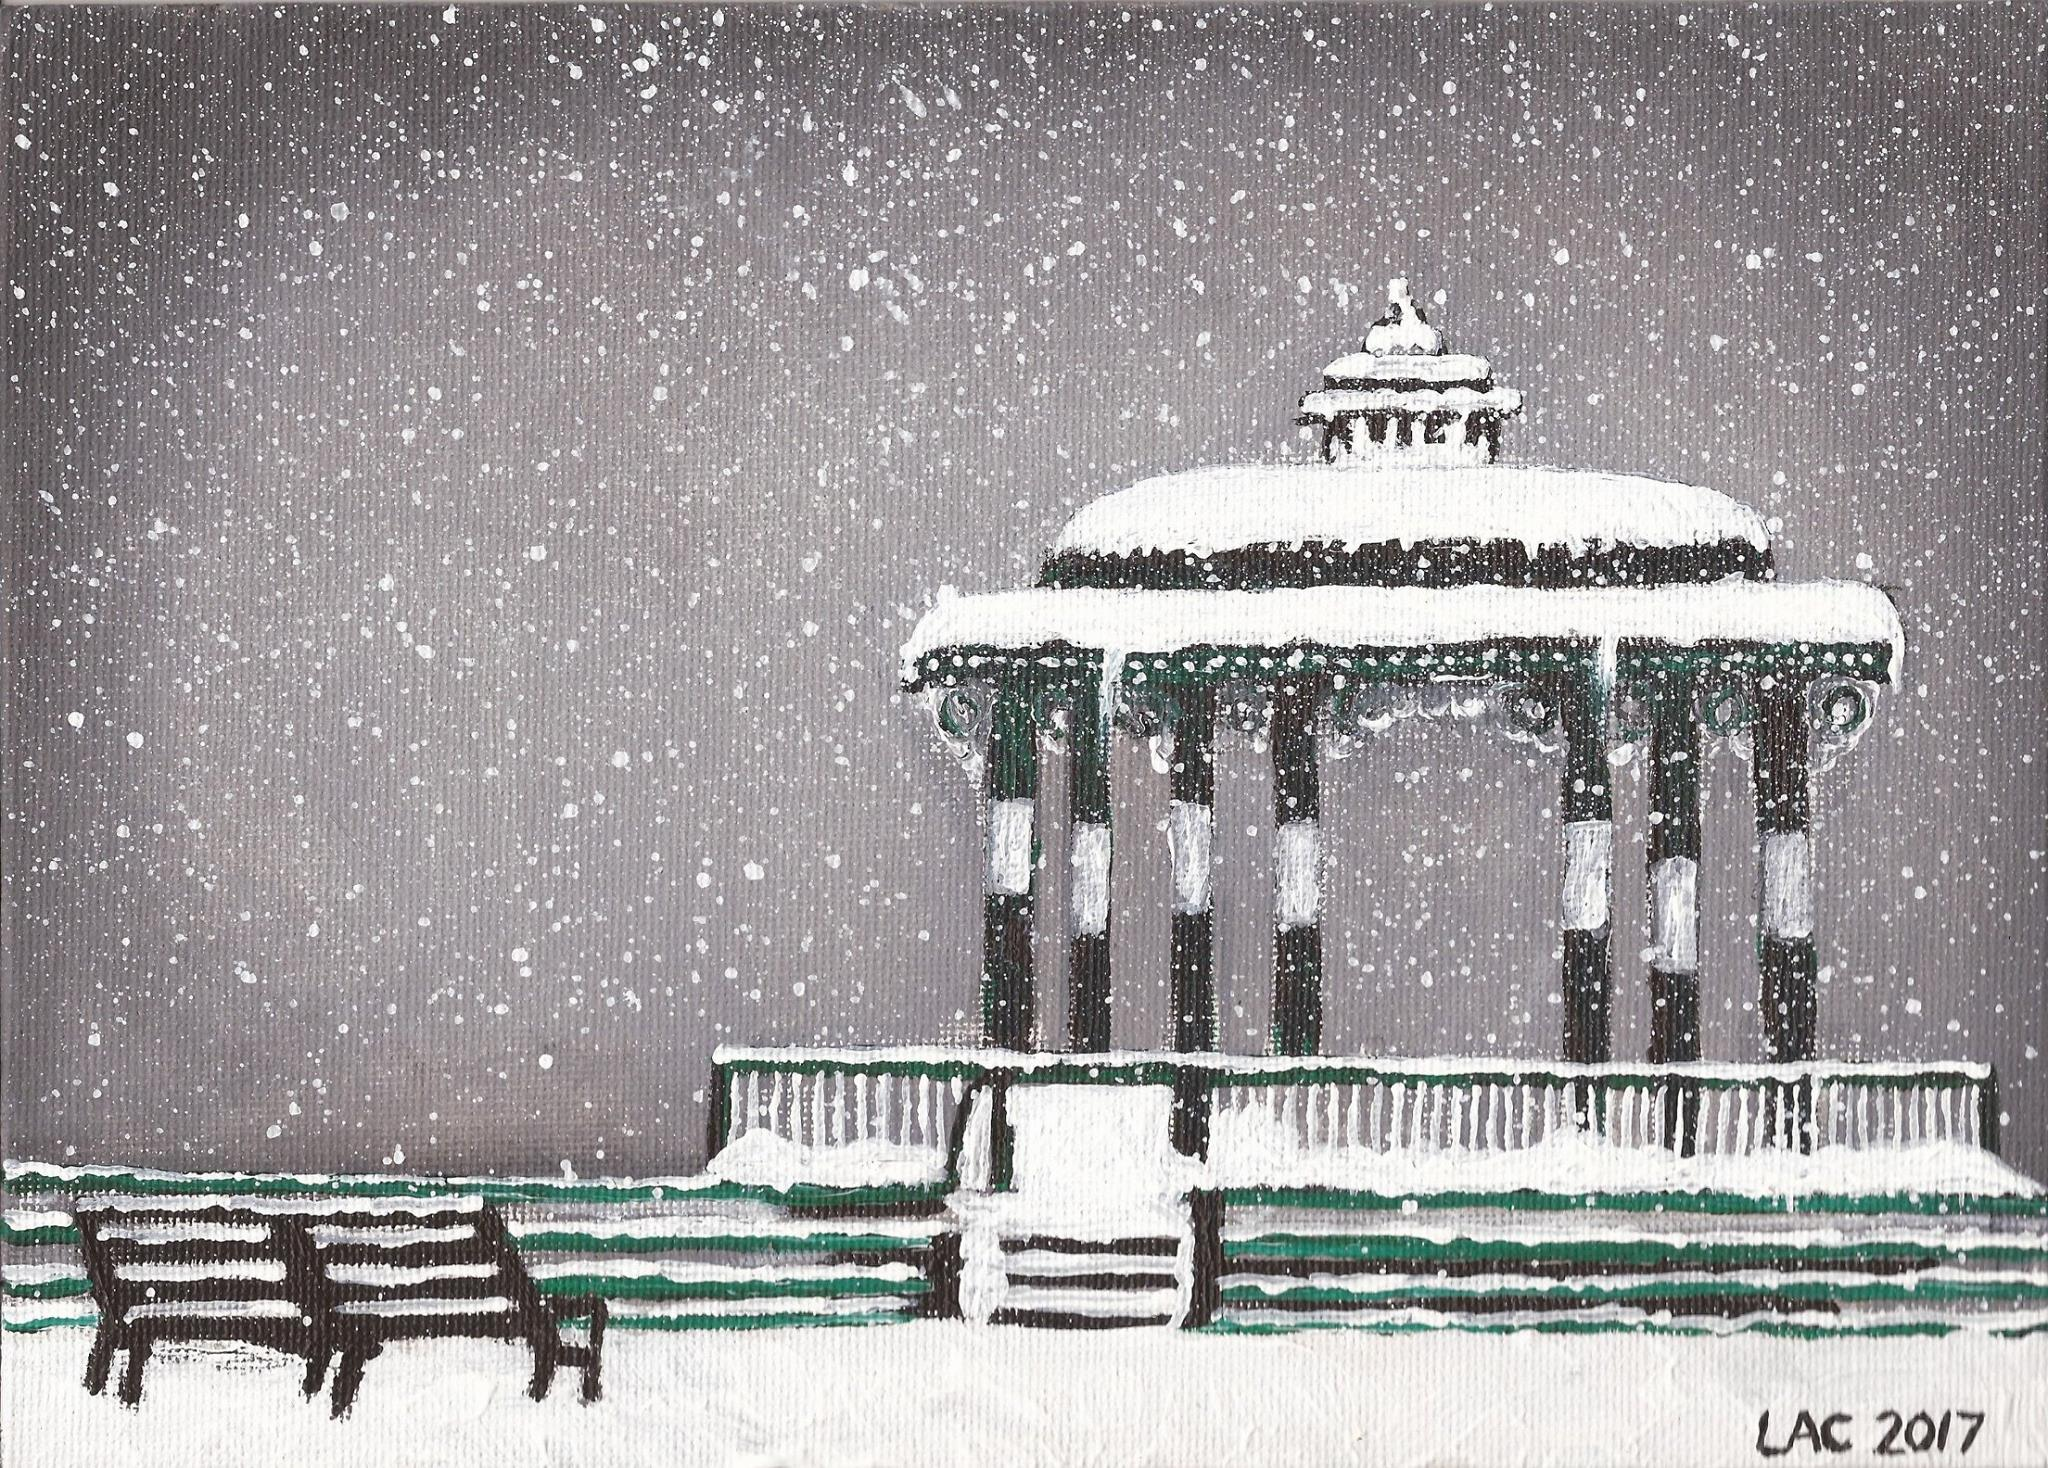 Painting of bandstand by Lindsay Crook